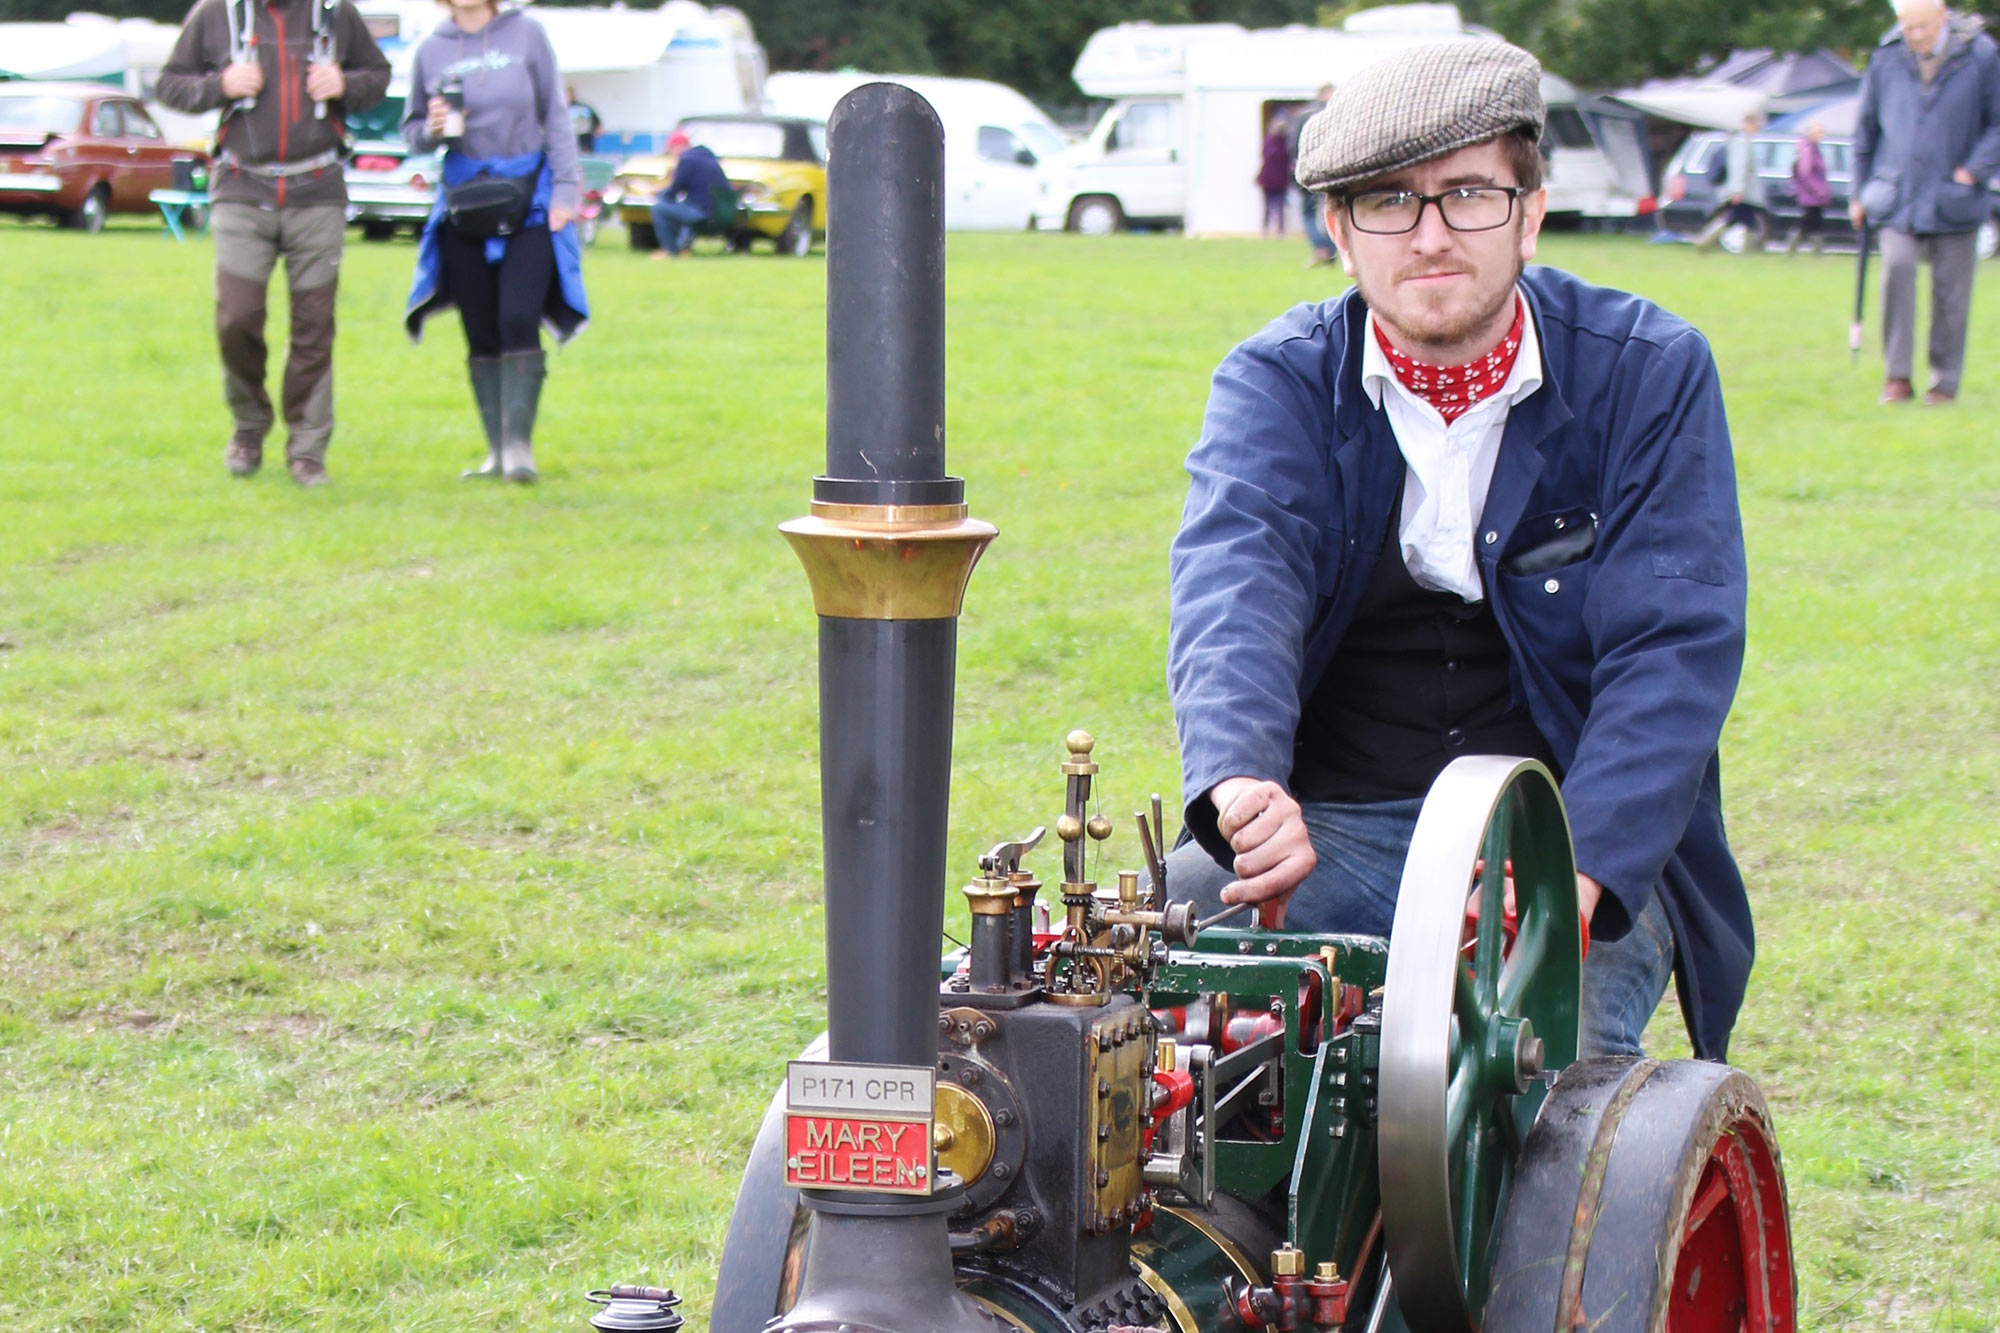 Miniature steam engine at Burley charity show